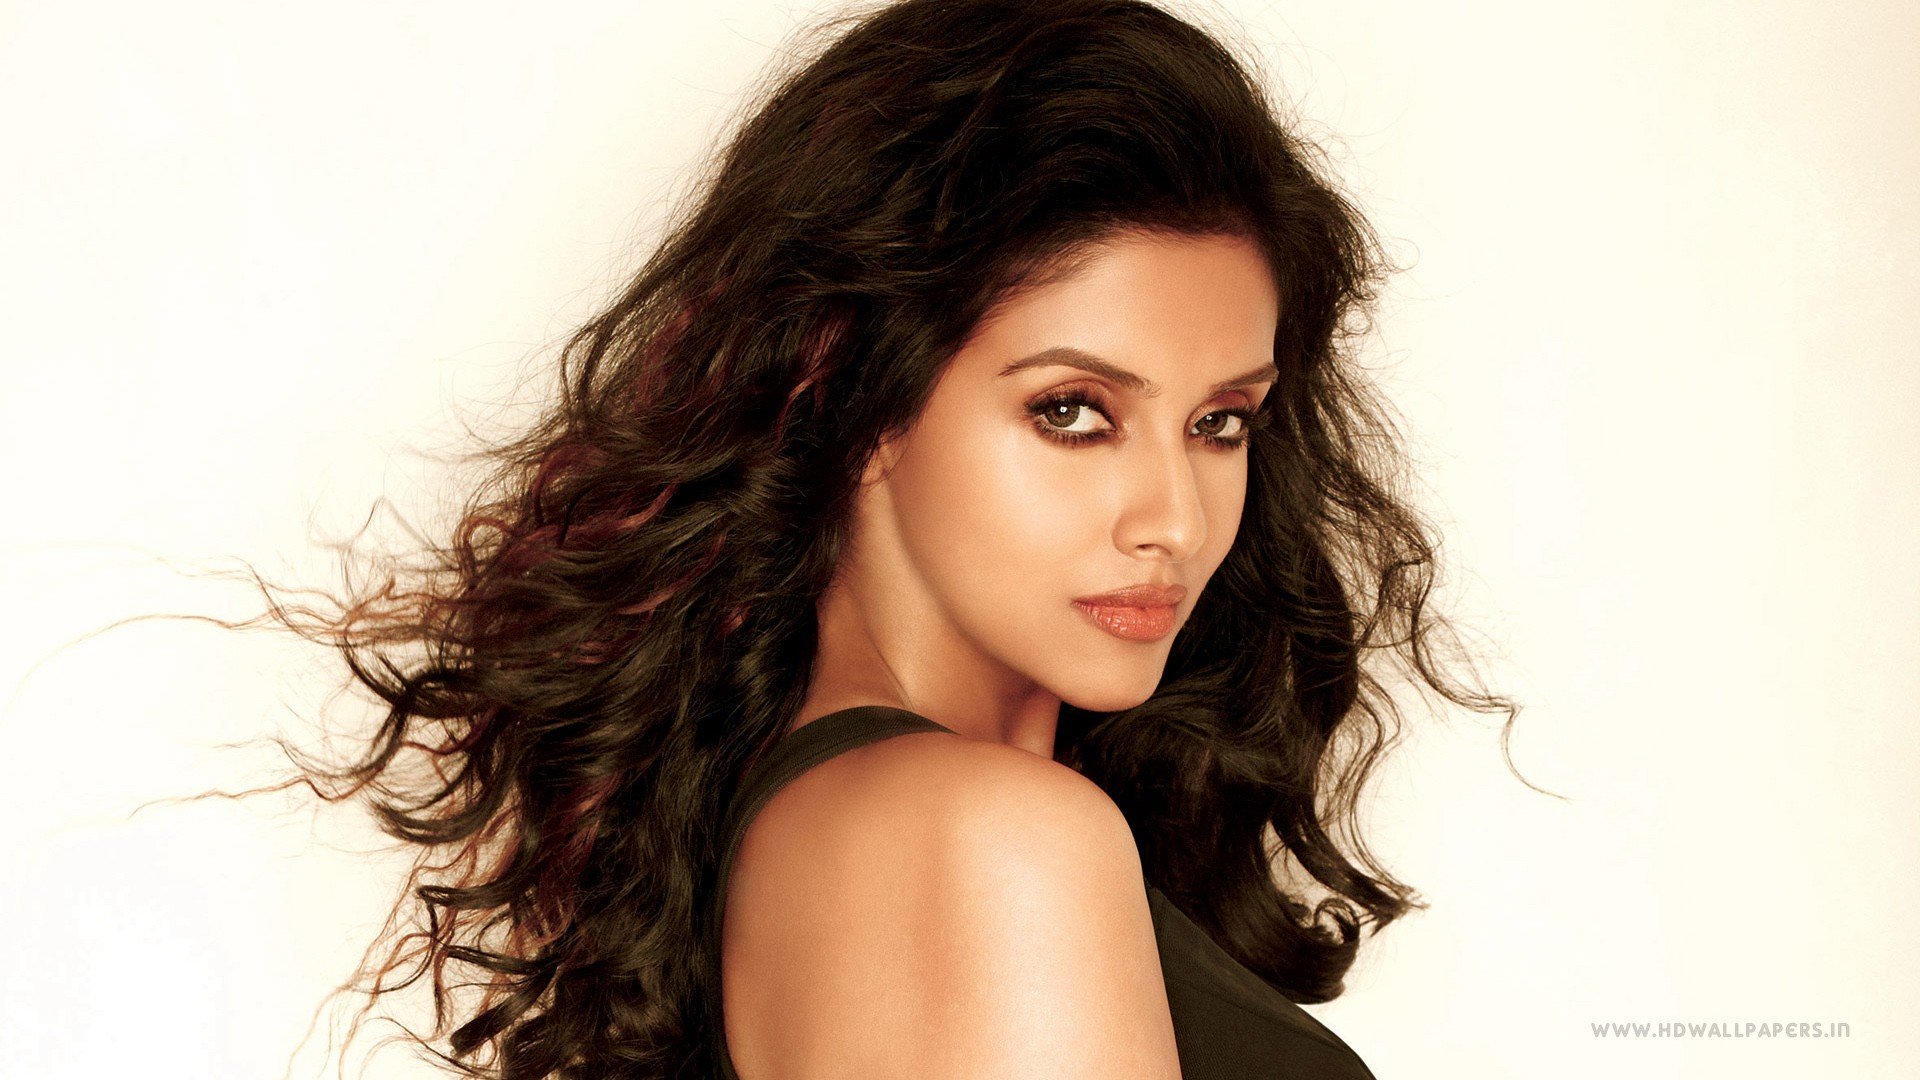 Deepika Padukone Hd Wallpapers For Iphone Asin Indian Actress Wallpapers Hd Wallpapers Id 15363